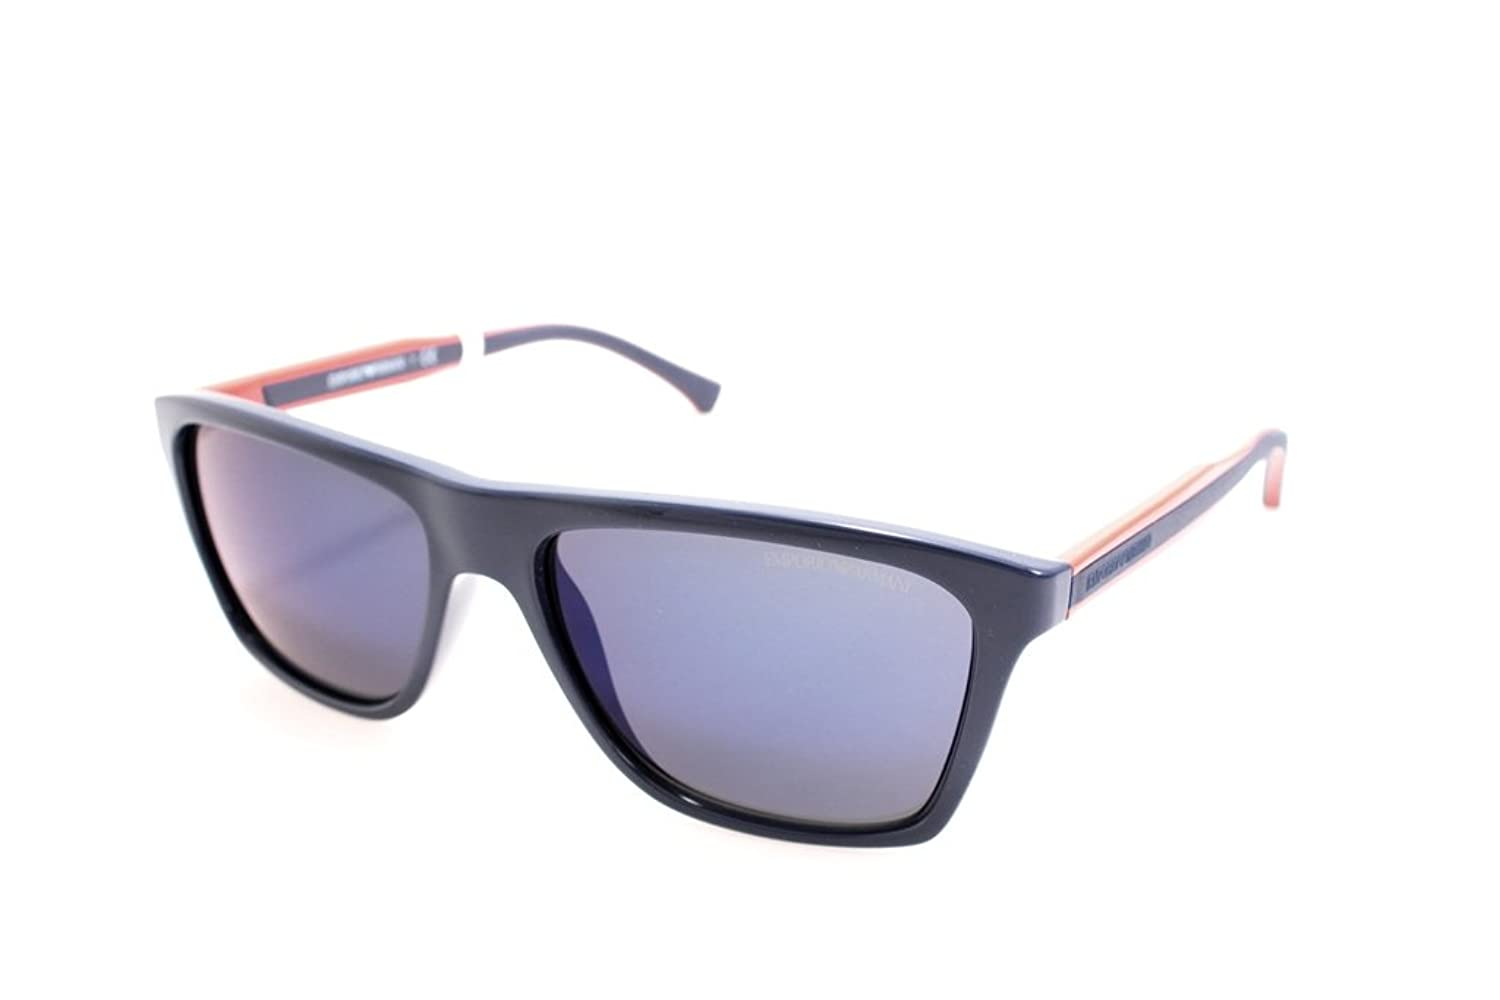 mens sunglasses for sale  sunglasses-514596